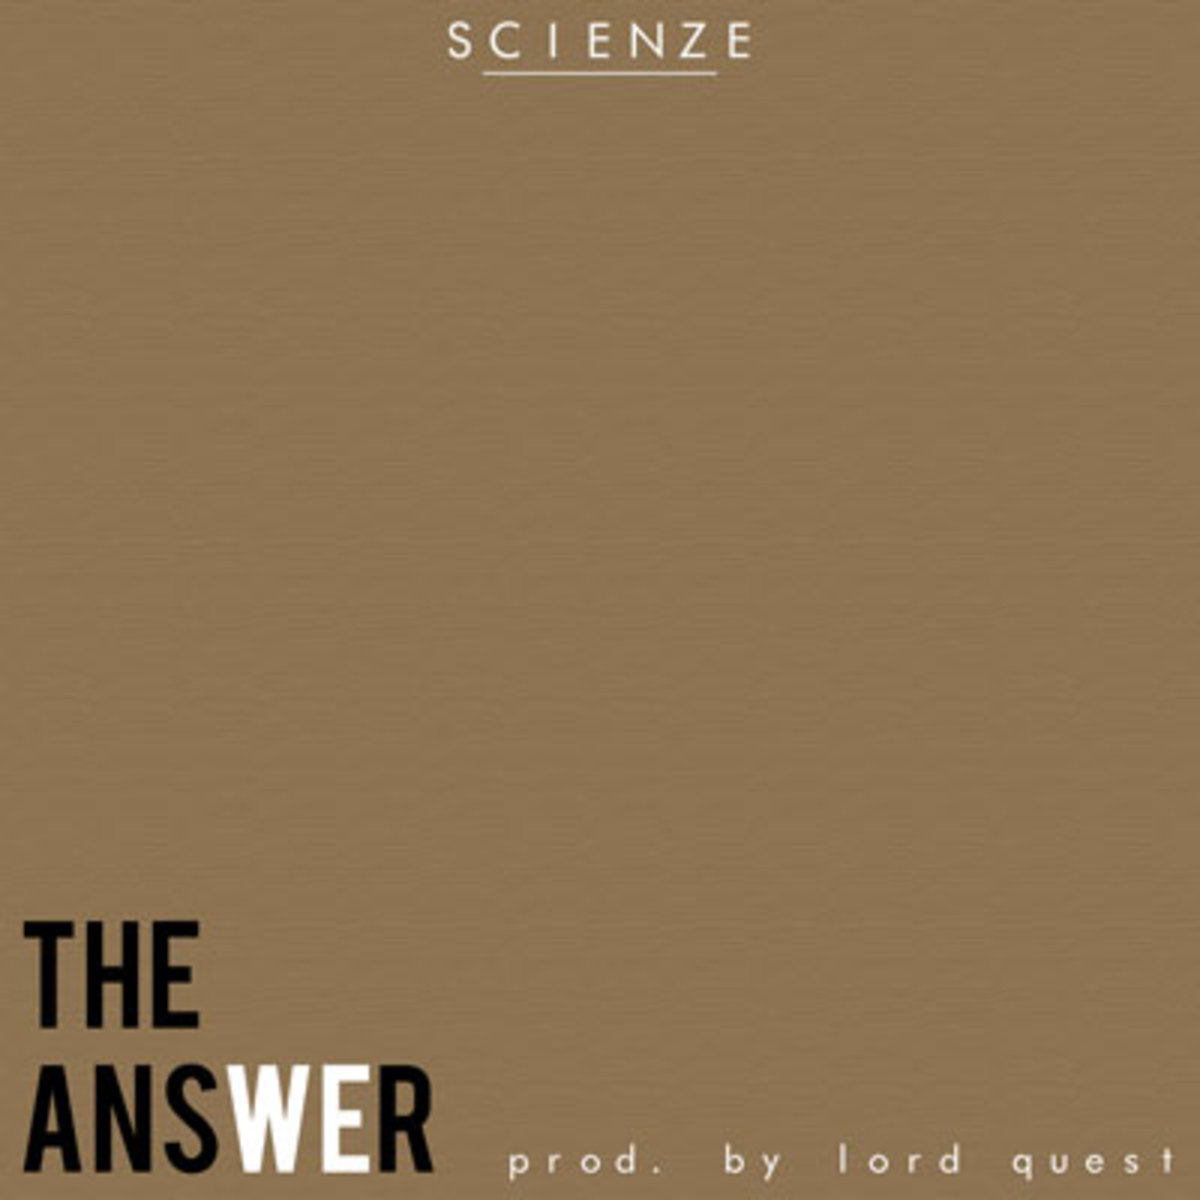 scienze-theanswer.jpg